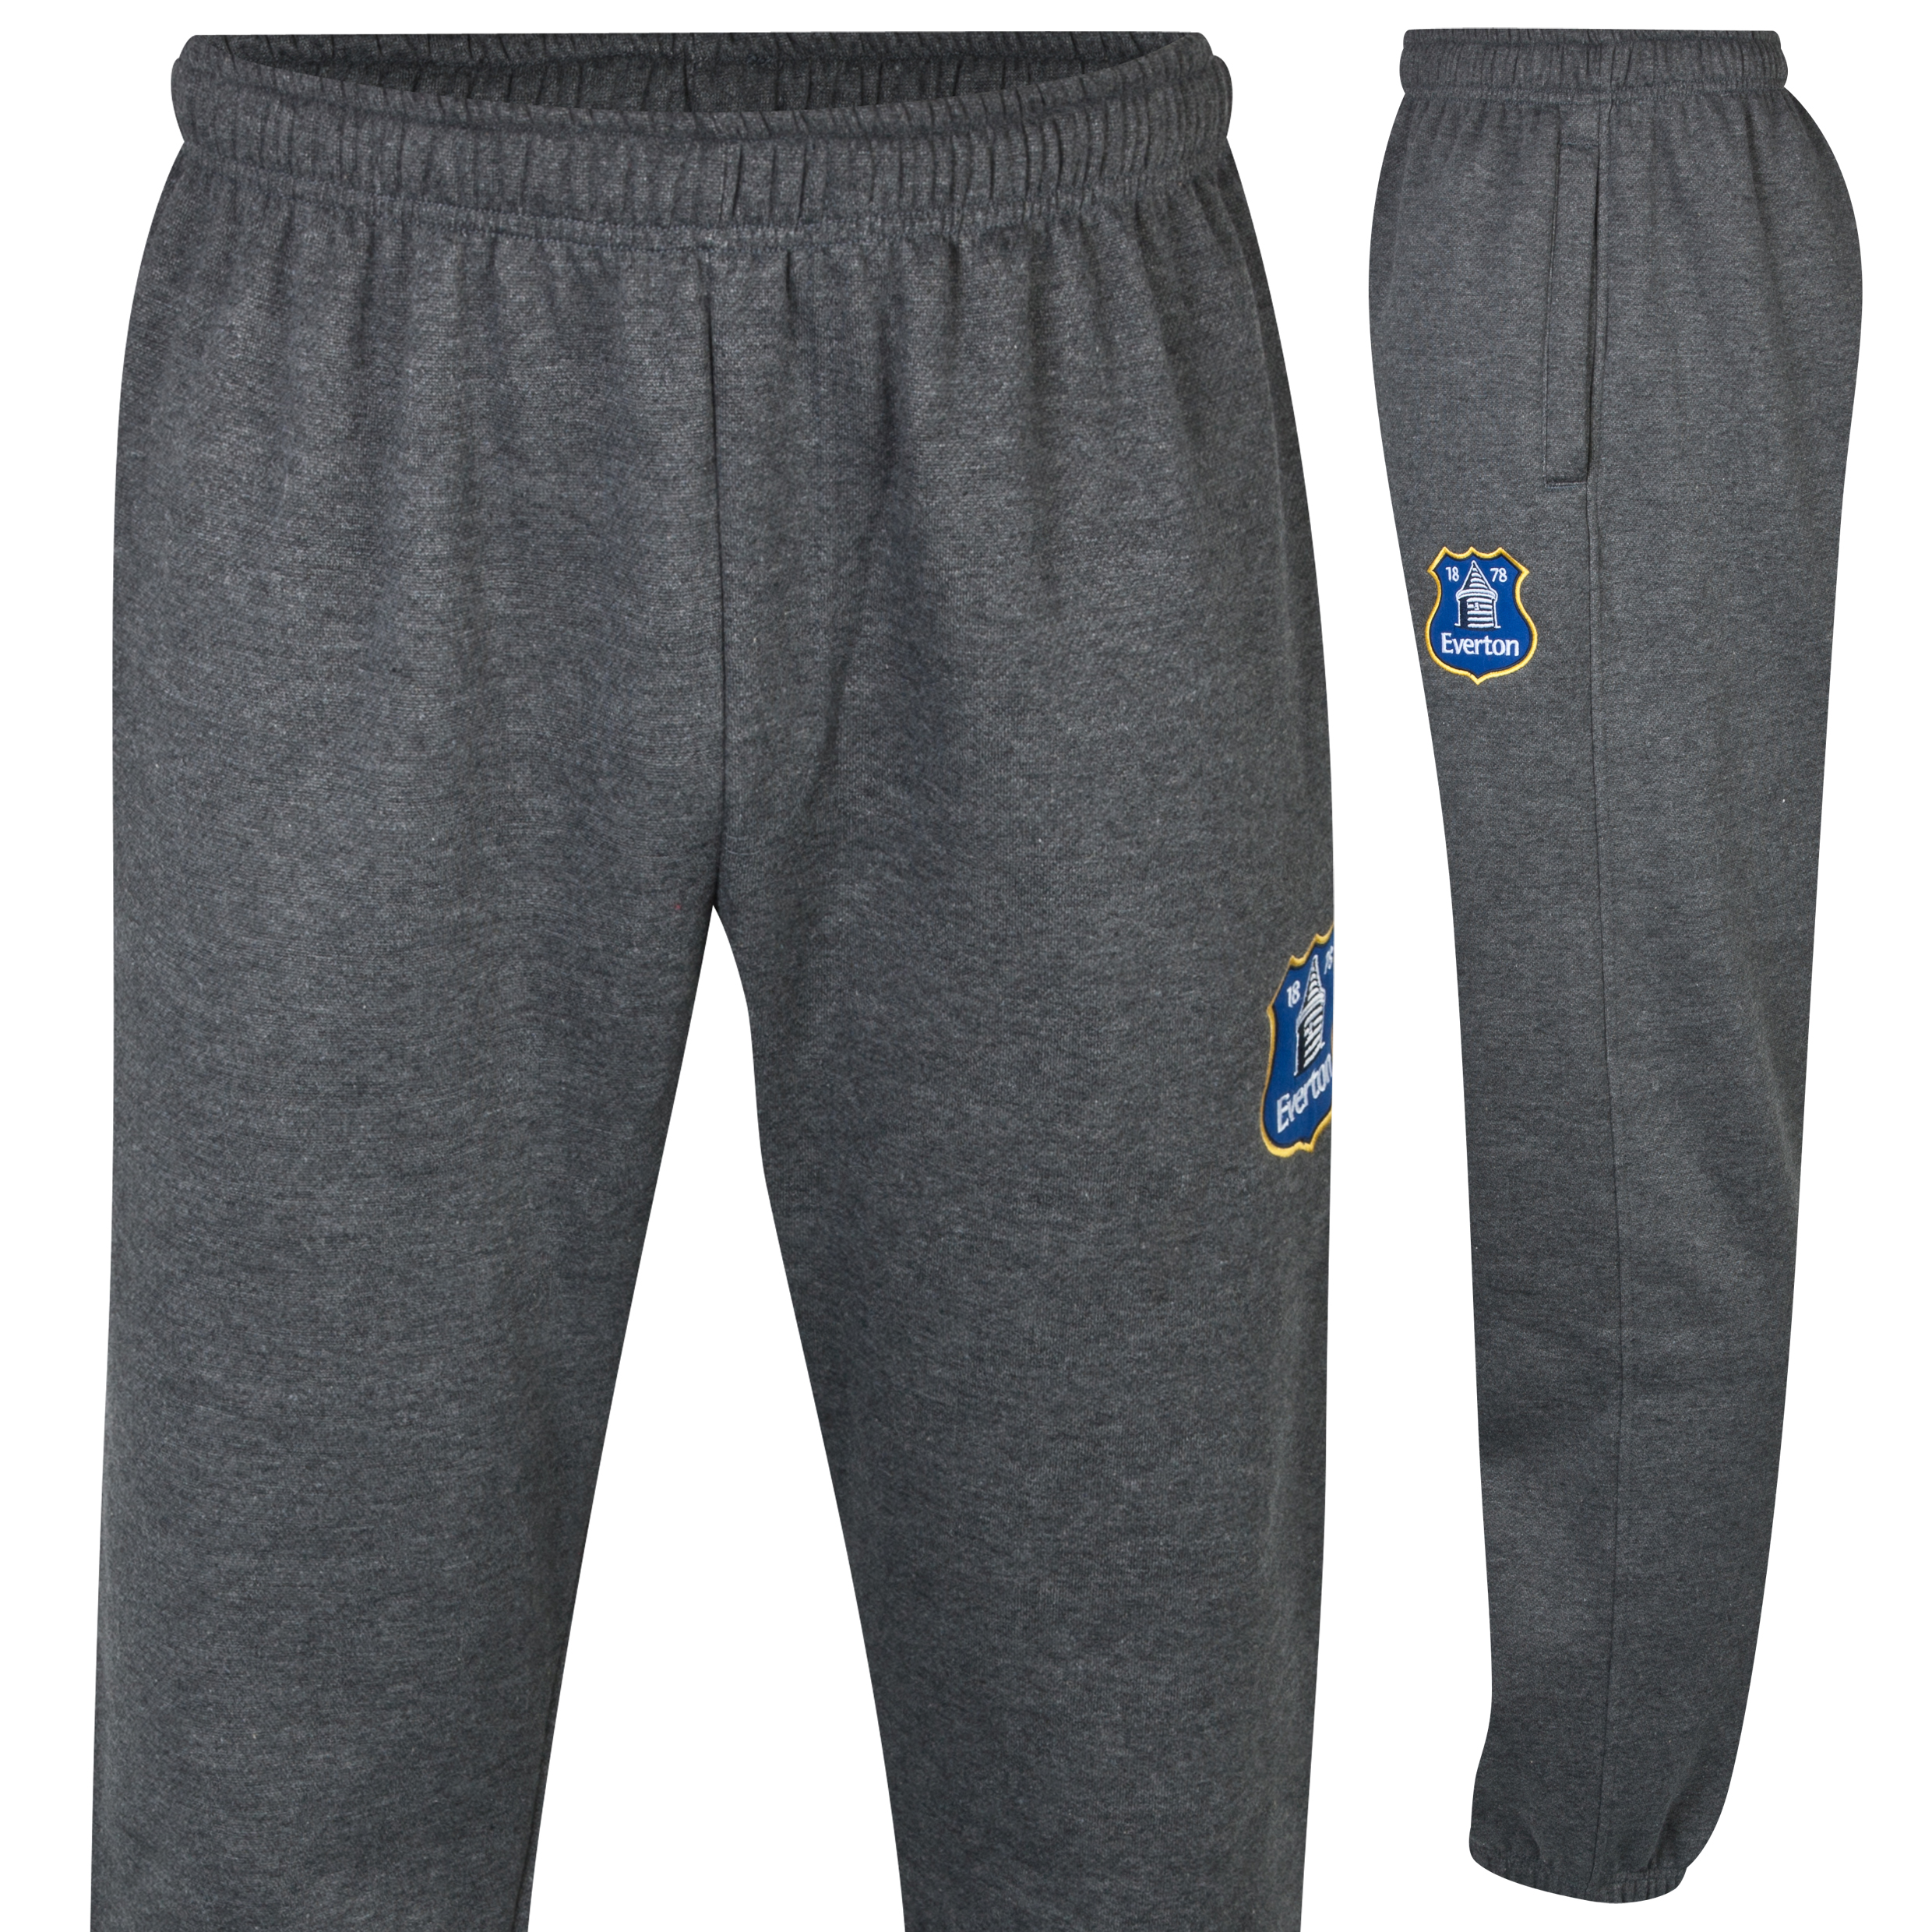 Everton Essentials Strike Pants - Mens Charcoal